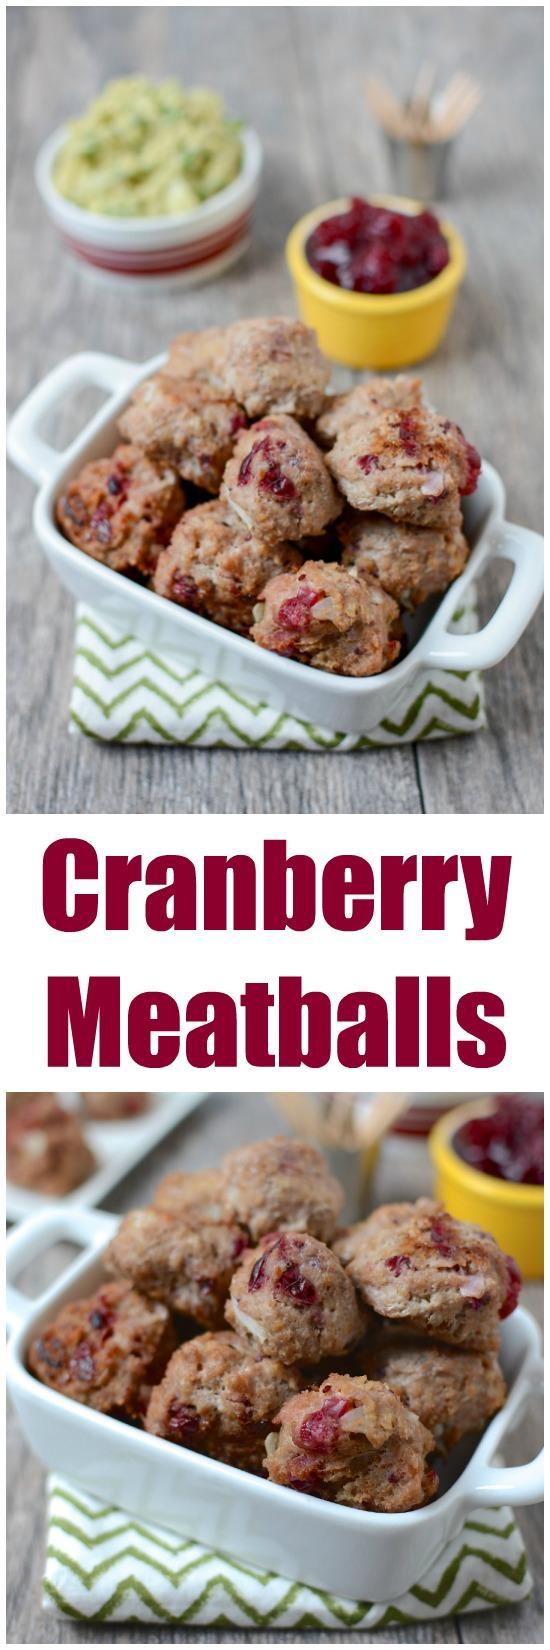 These easy Cranberry Meatballs are a great way to use up leftover cranberry sauce and make the perfect appetizer recipe for a holiday party.